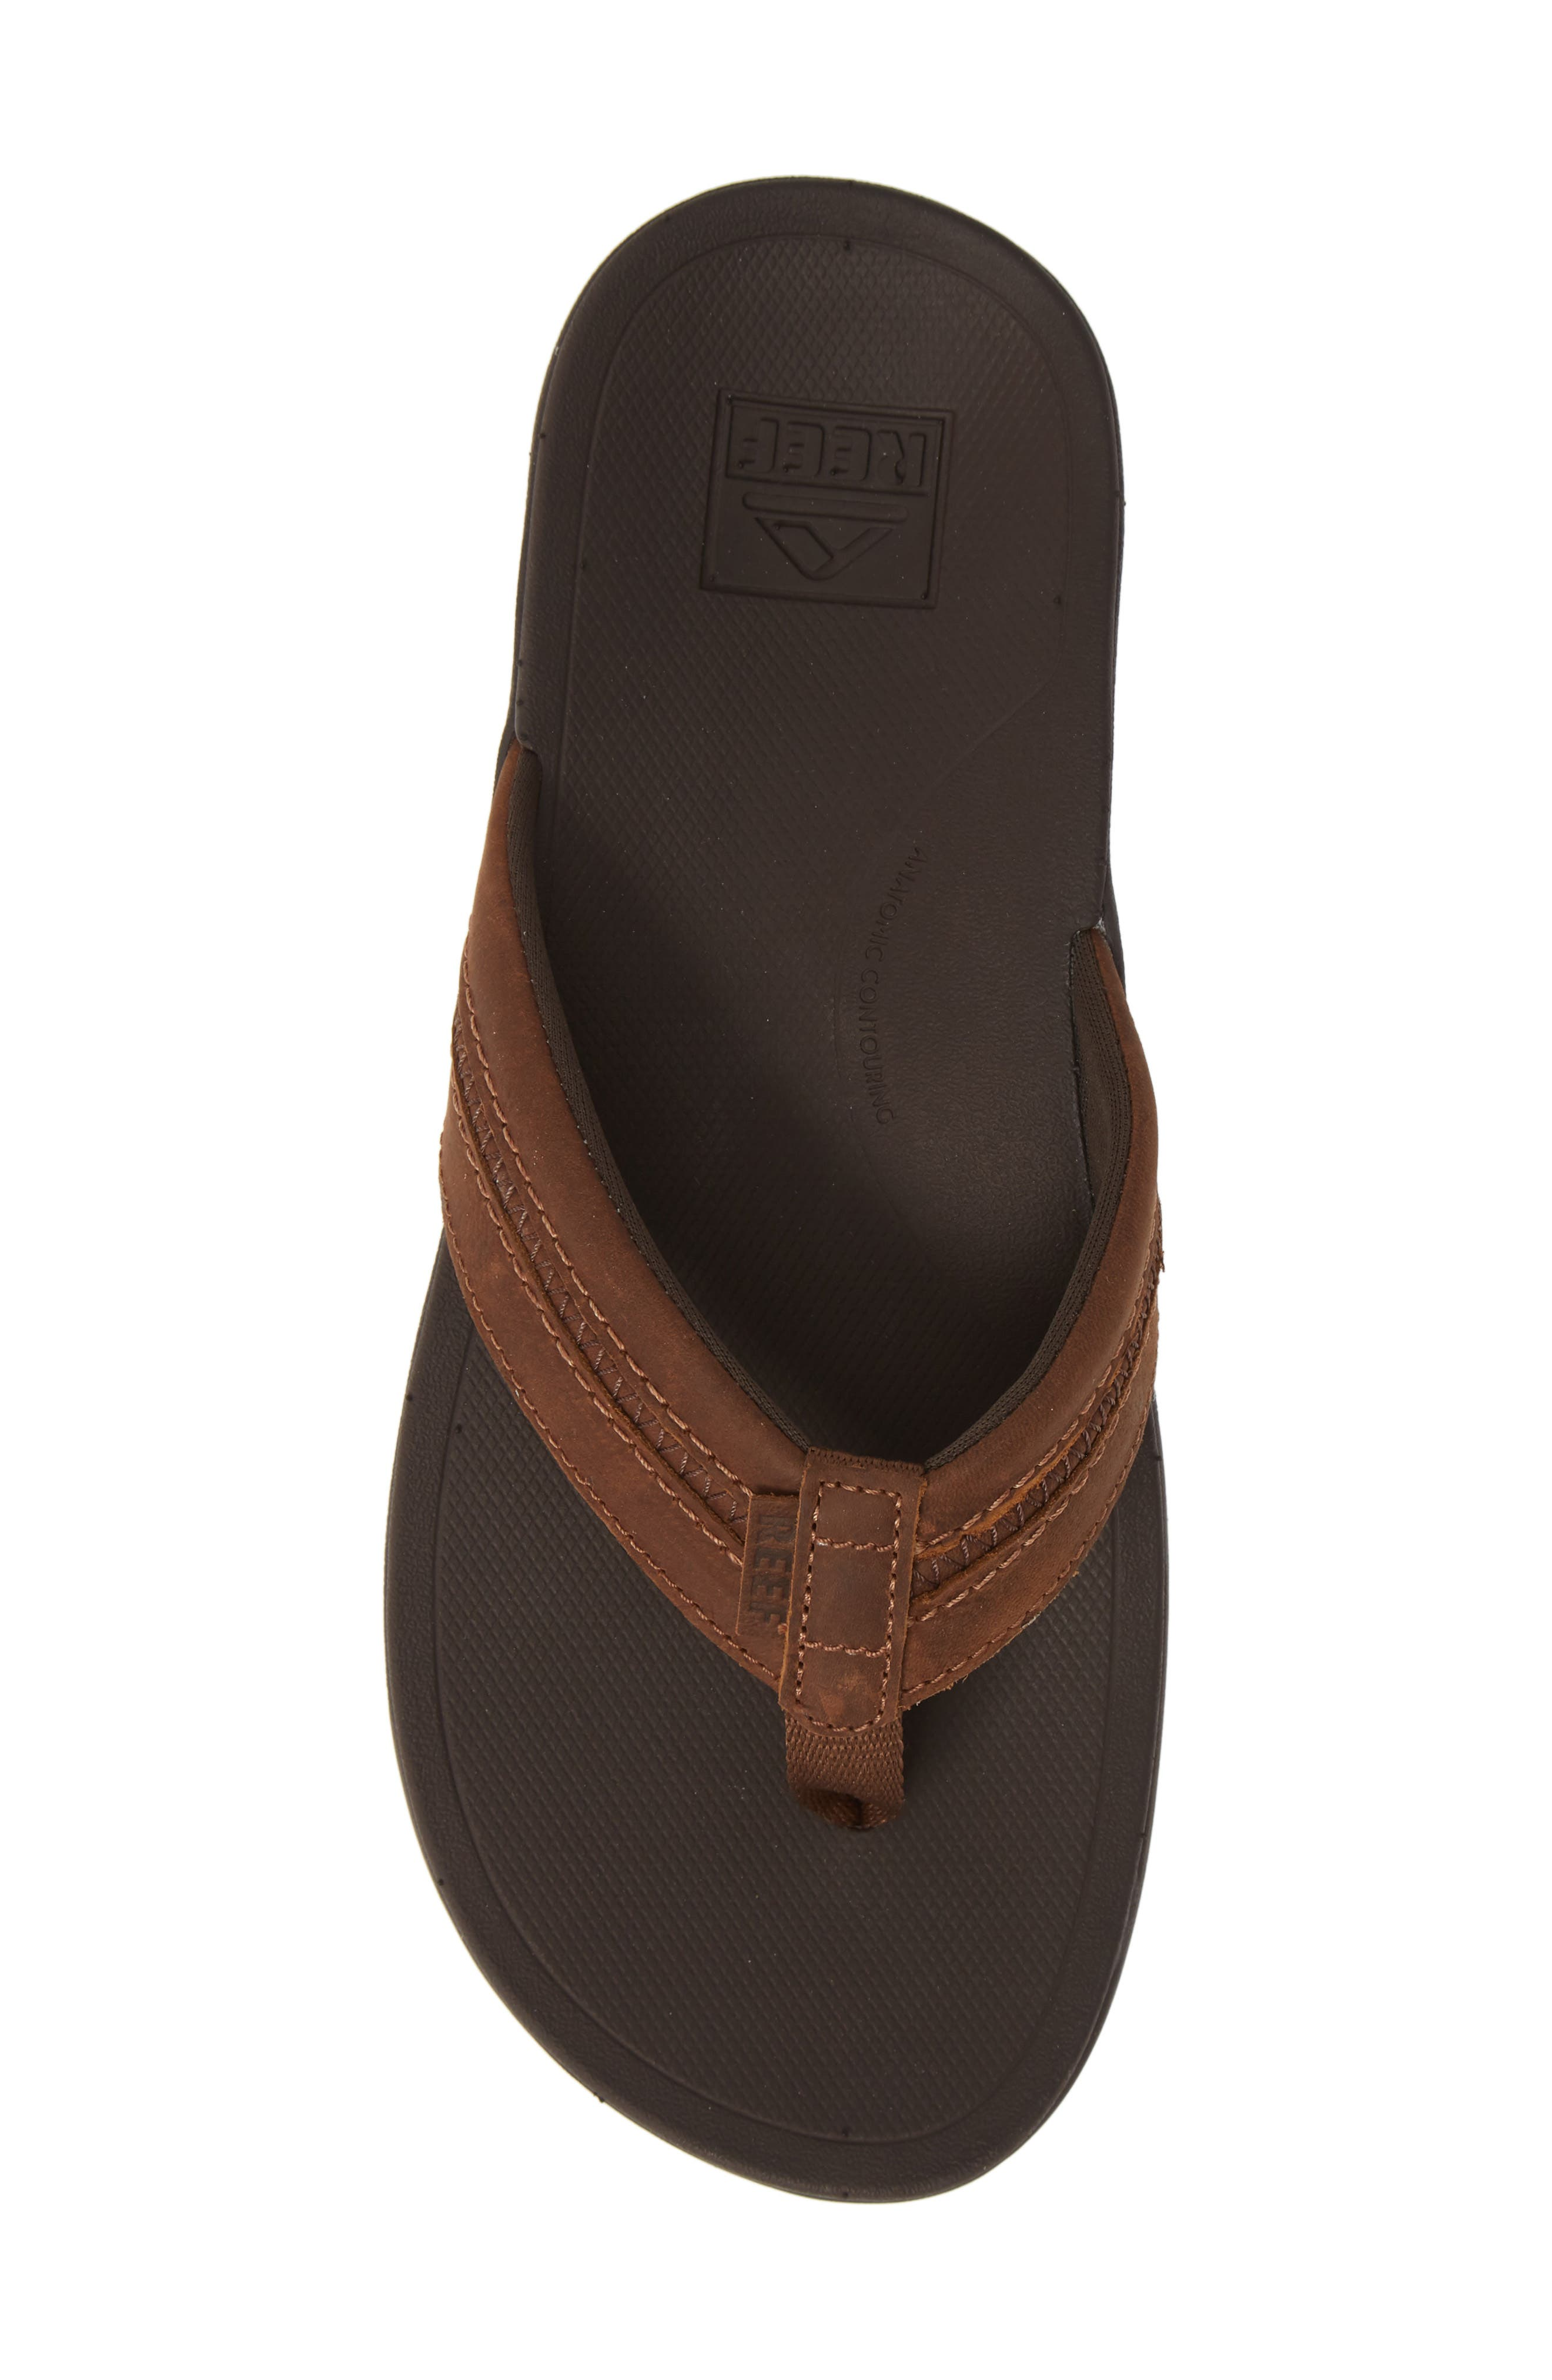 REEF, Ortho Bounce Coast Flip Flop, Alternate thumbnail 5, color, BROWN